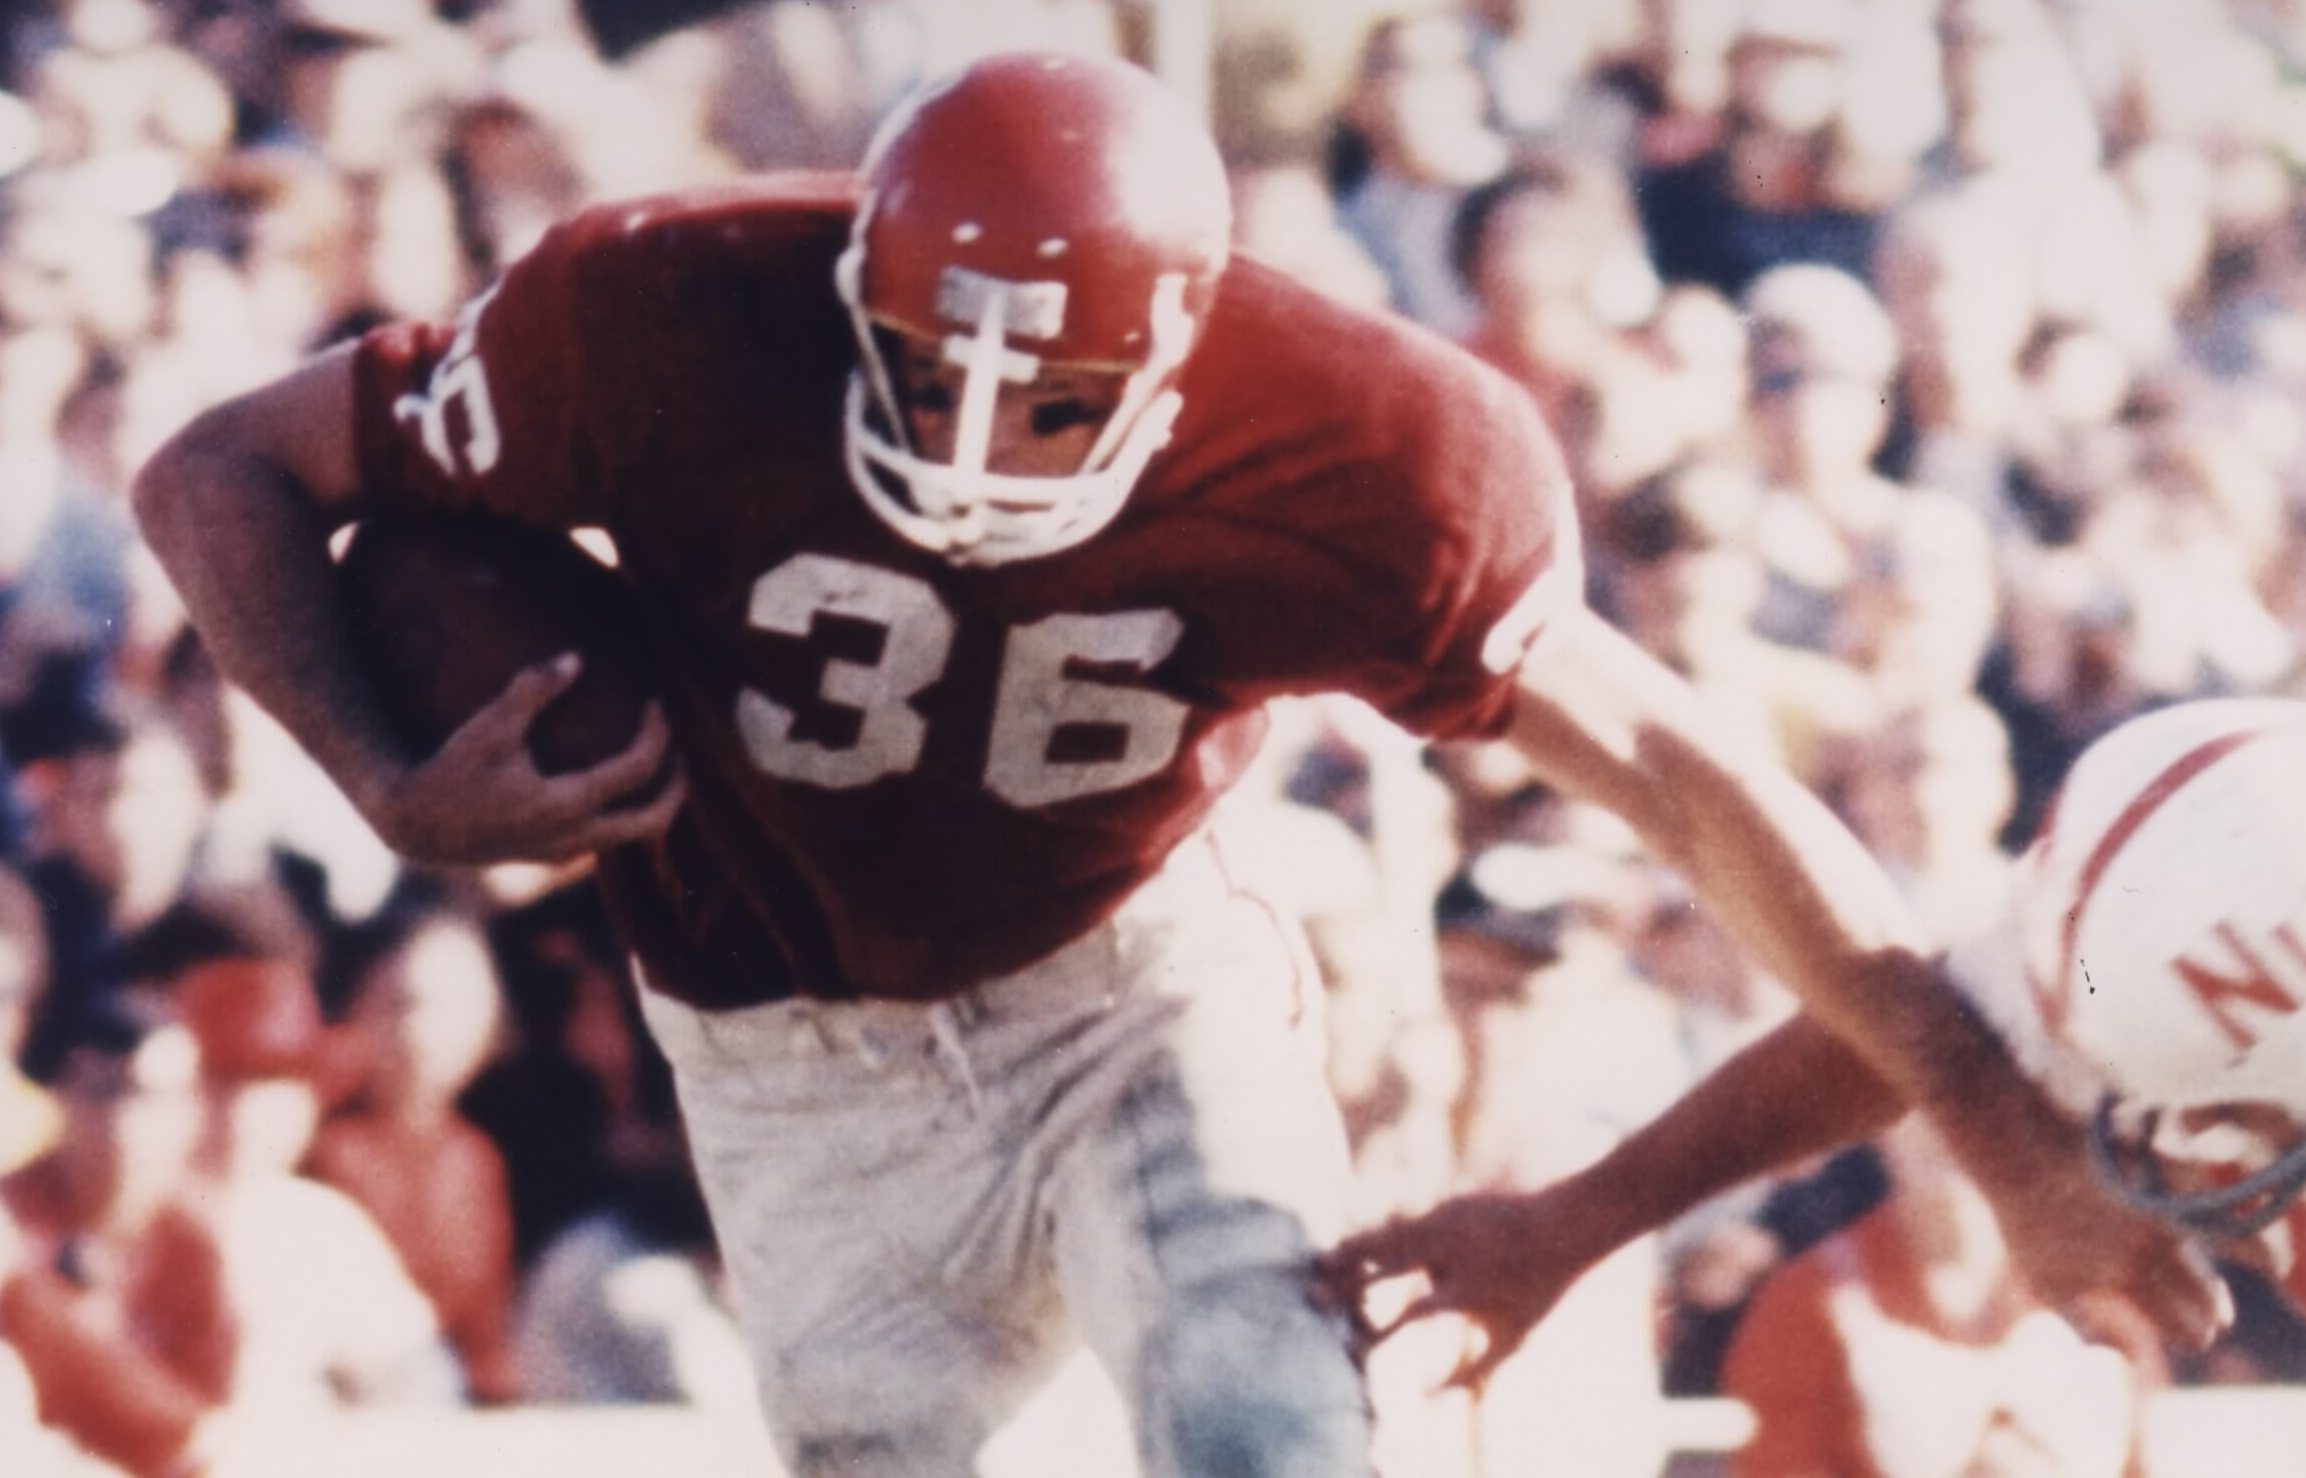 Oklahoma football: Steve Owens' unmatched durability leads